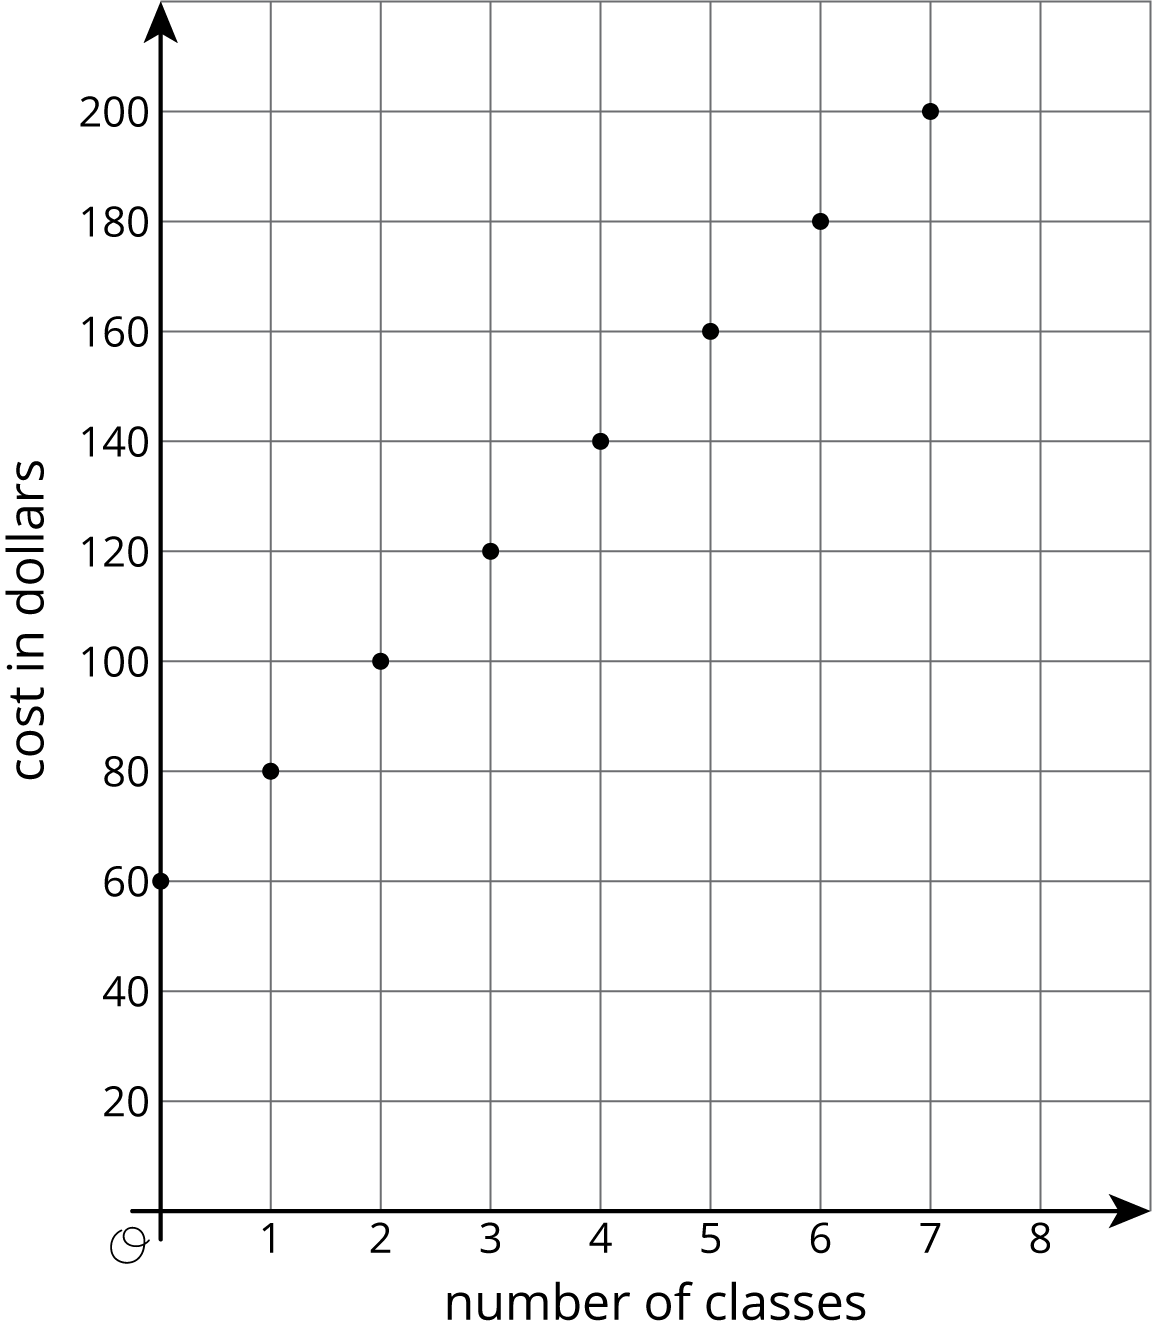 Worksheet Graph Paper With Axis And Numbers Grass Fedjp